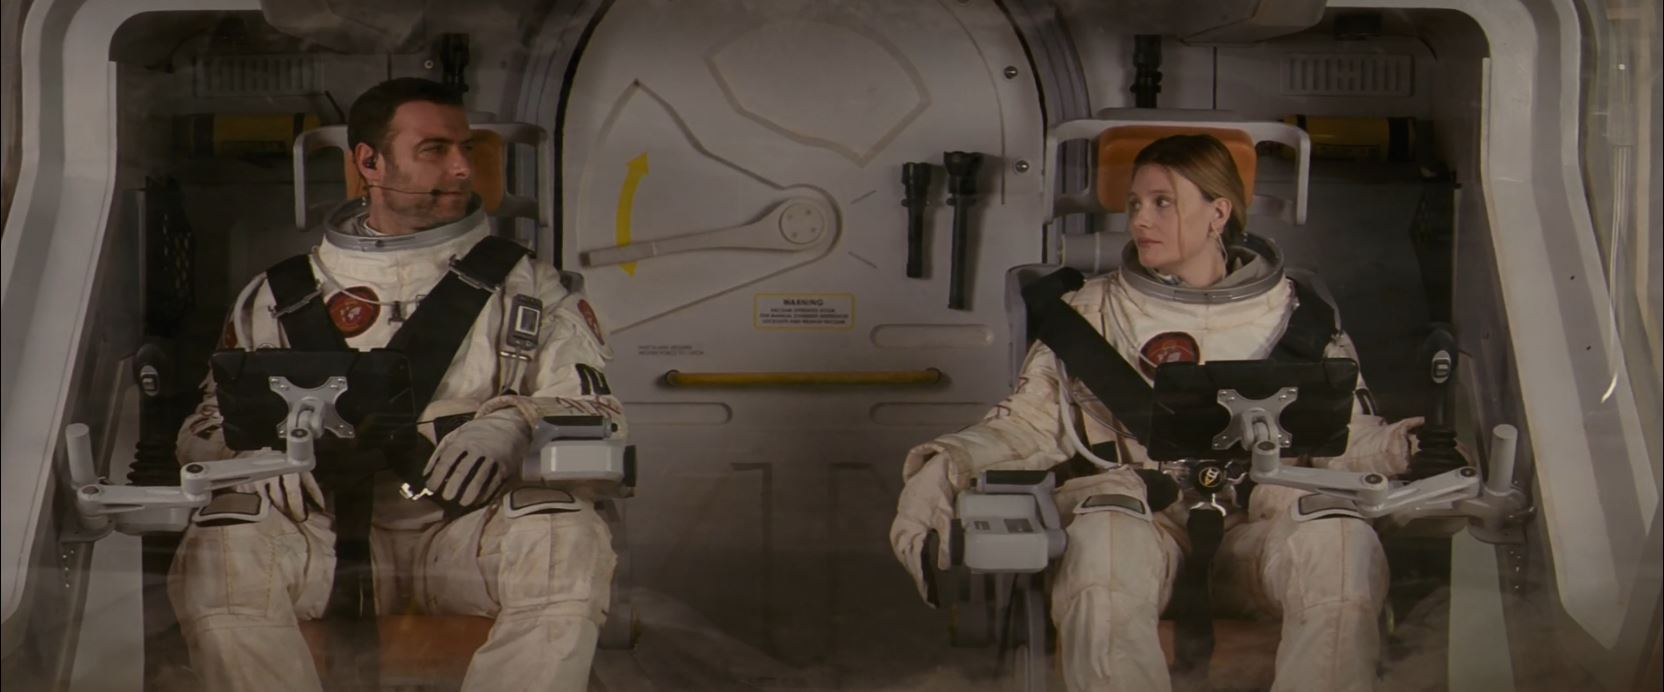 Romola Garai and Liev Schreiber in The Last Days On Mars